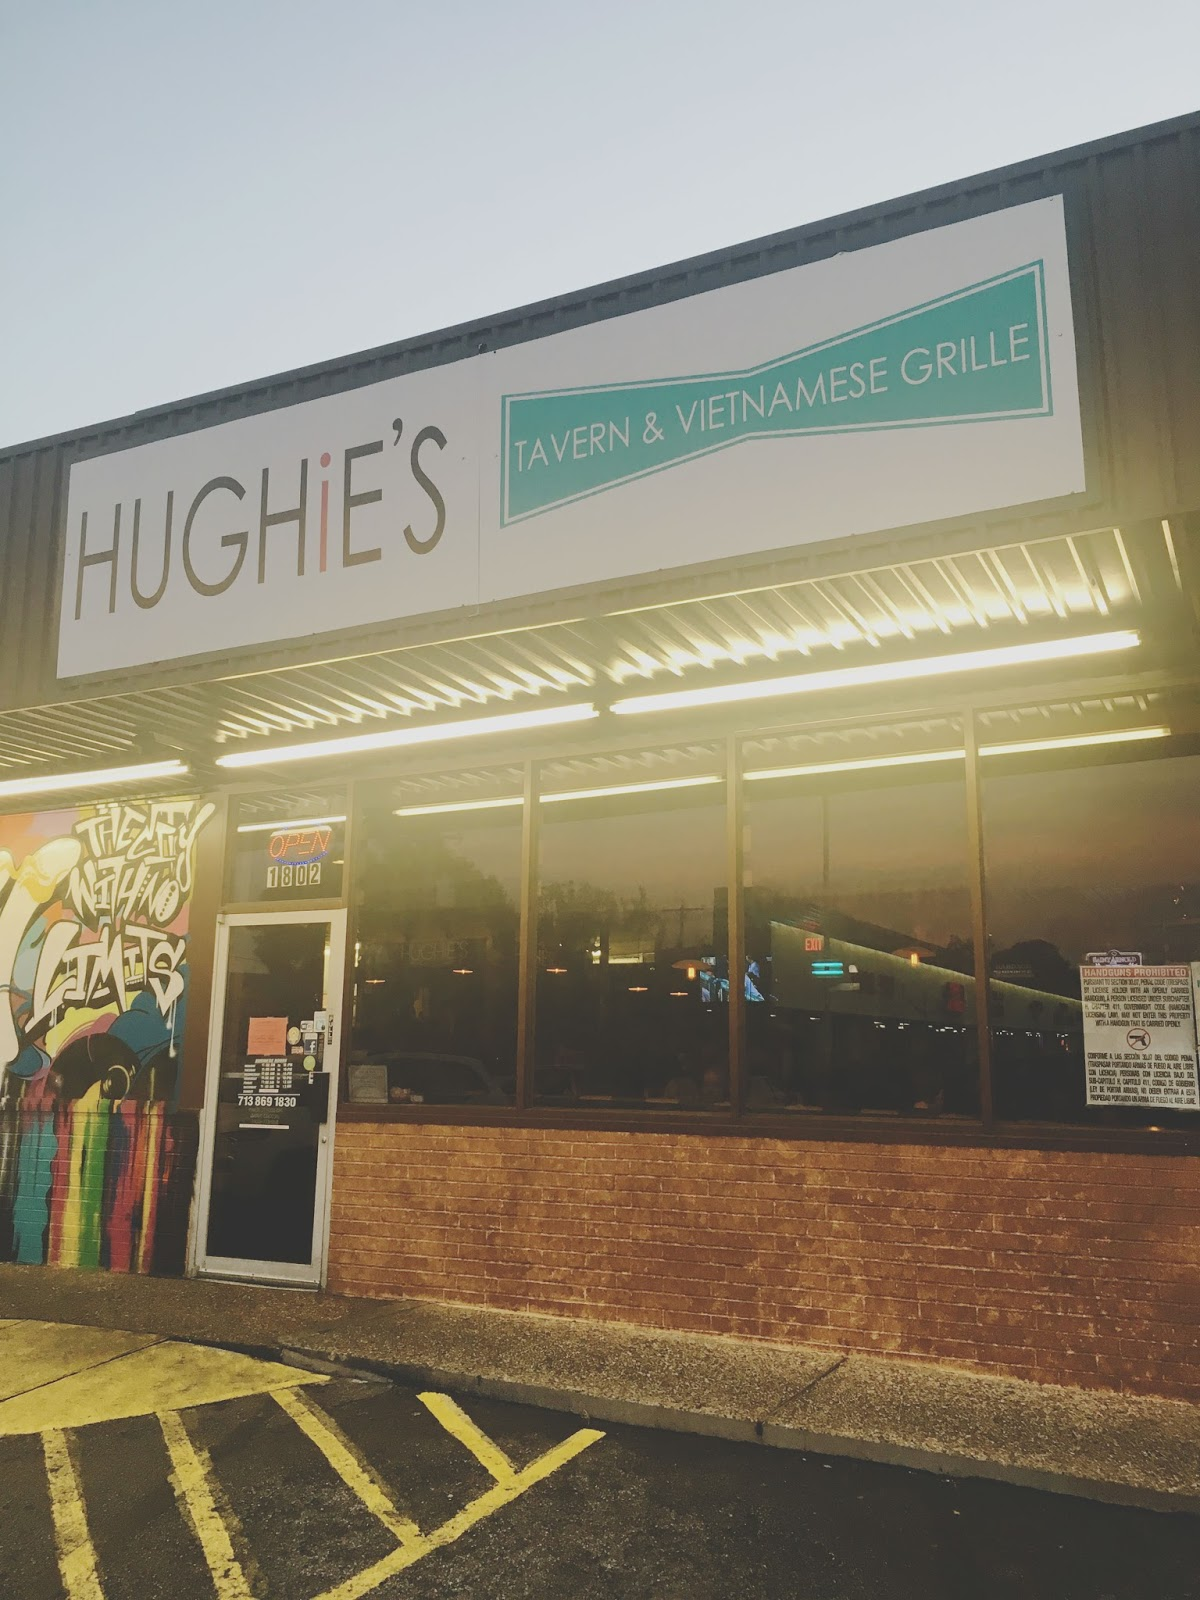 Hughie's - A restaurant/bar in Houston, Texas